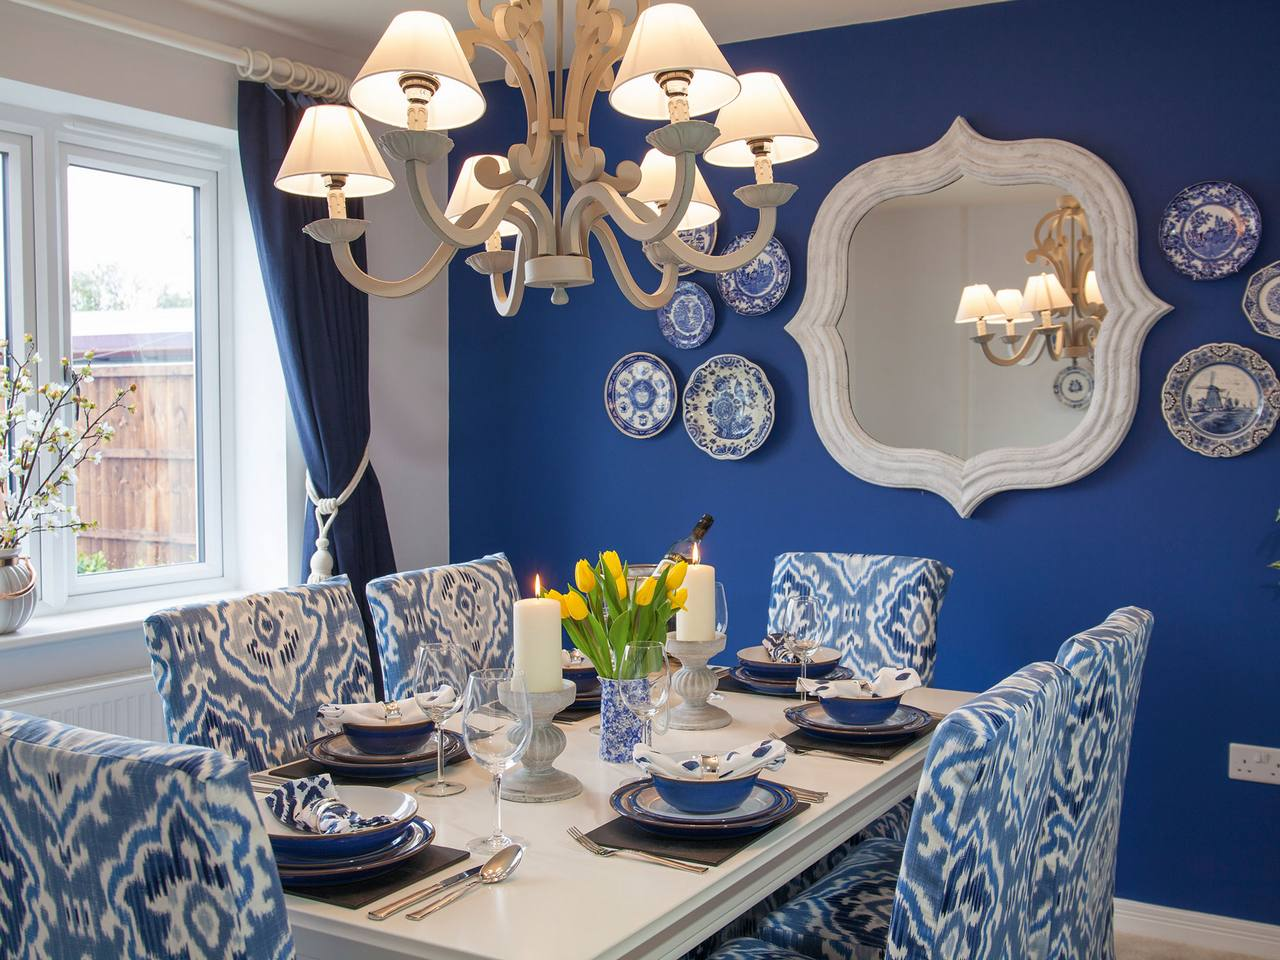 Wedgewood blue style dining room - recreate this with Fabric Gallery and Interiors, York